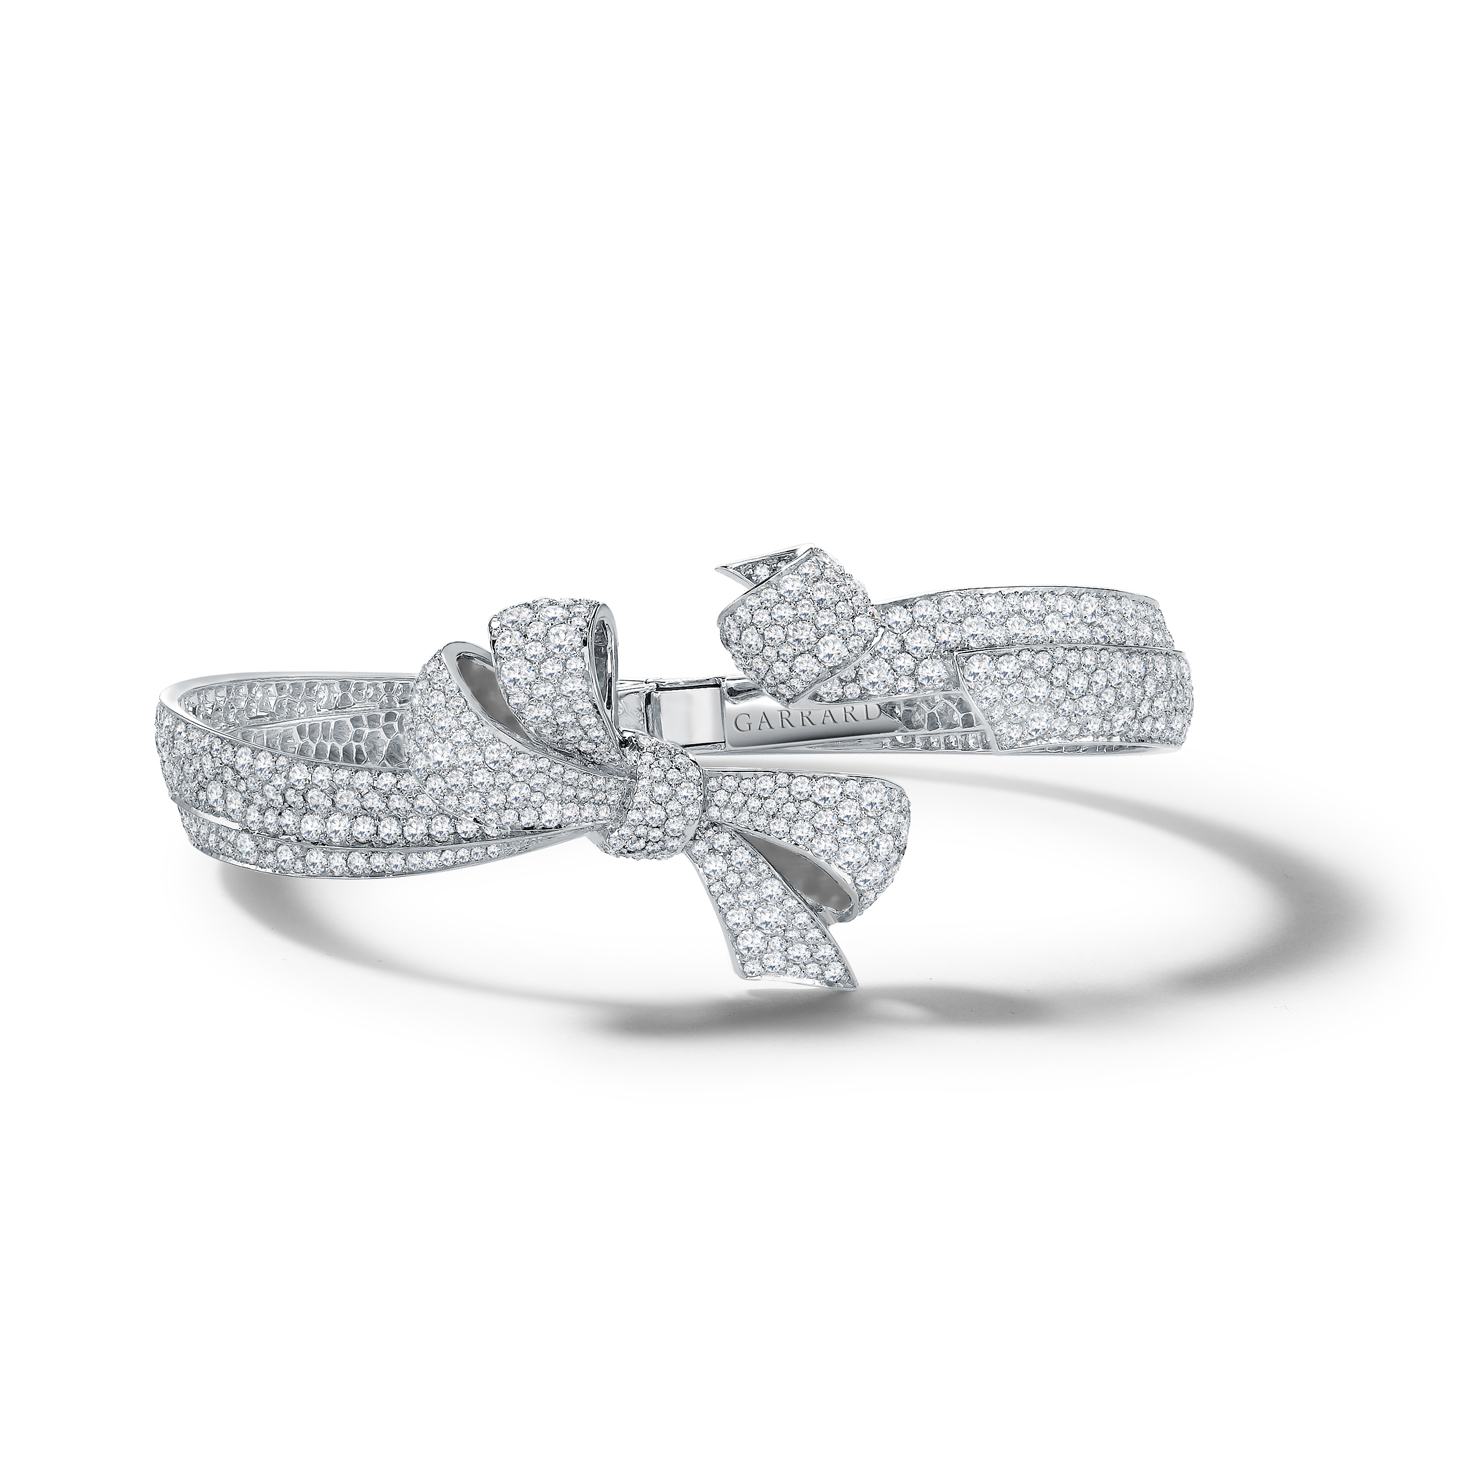 Garrard Bow bangle mounted on white gold with diamonds